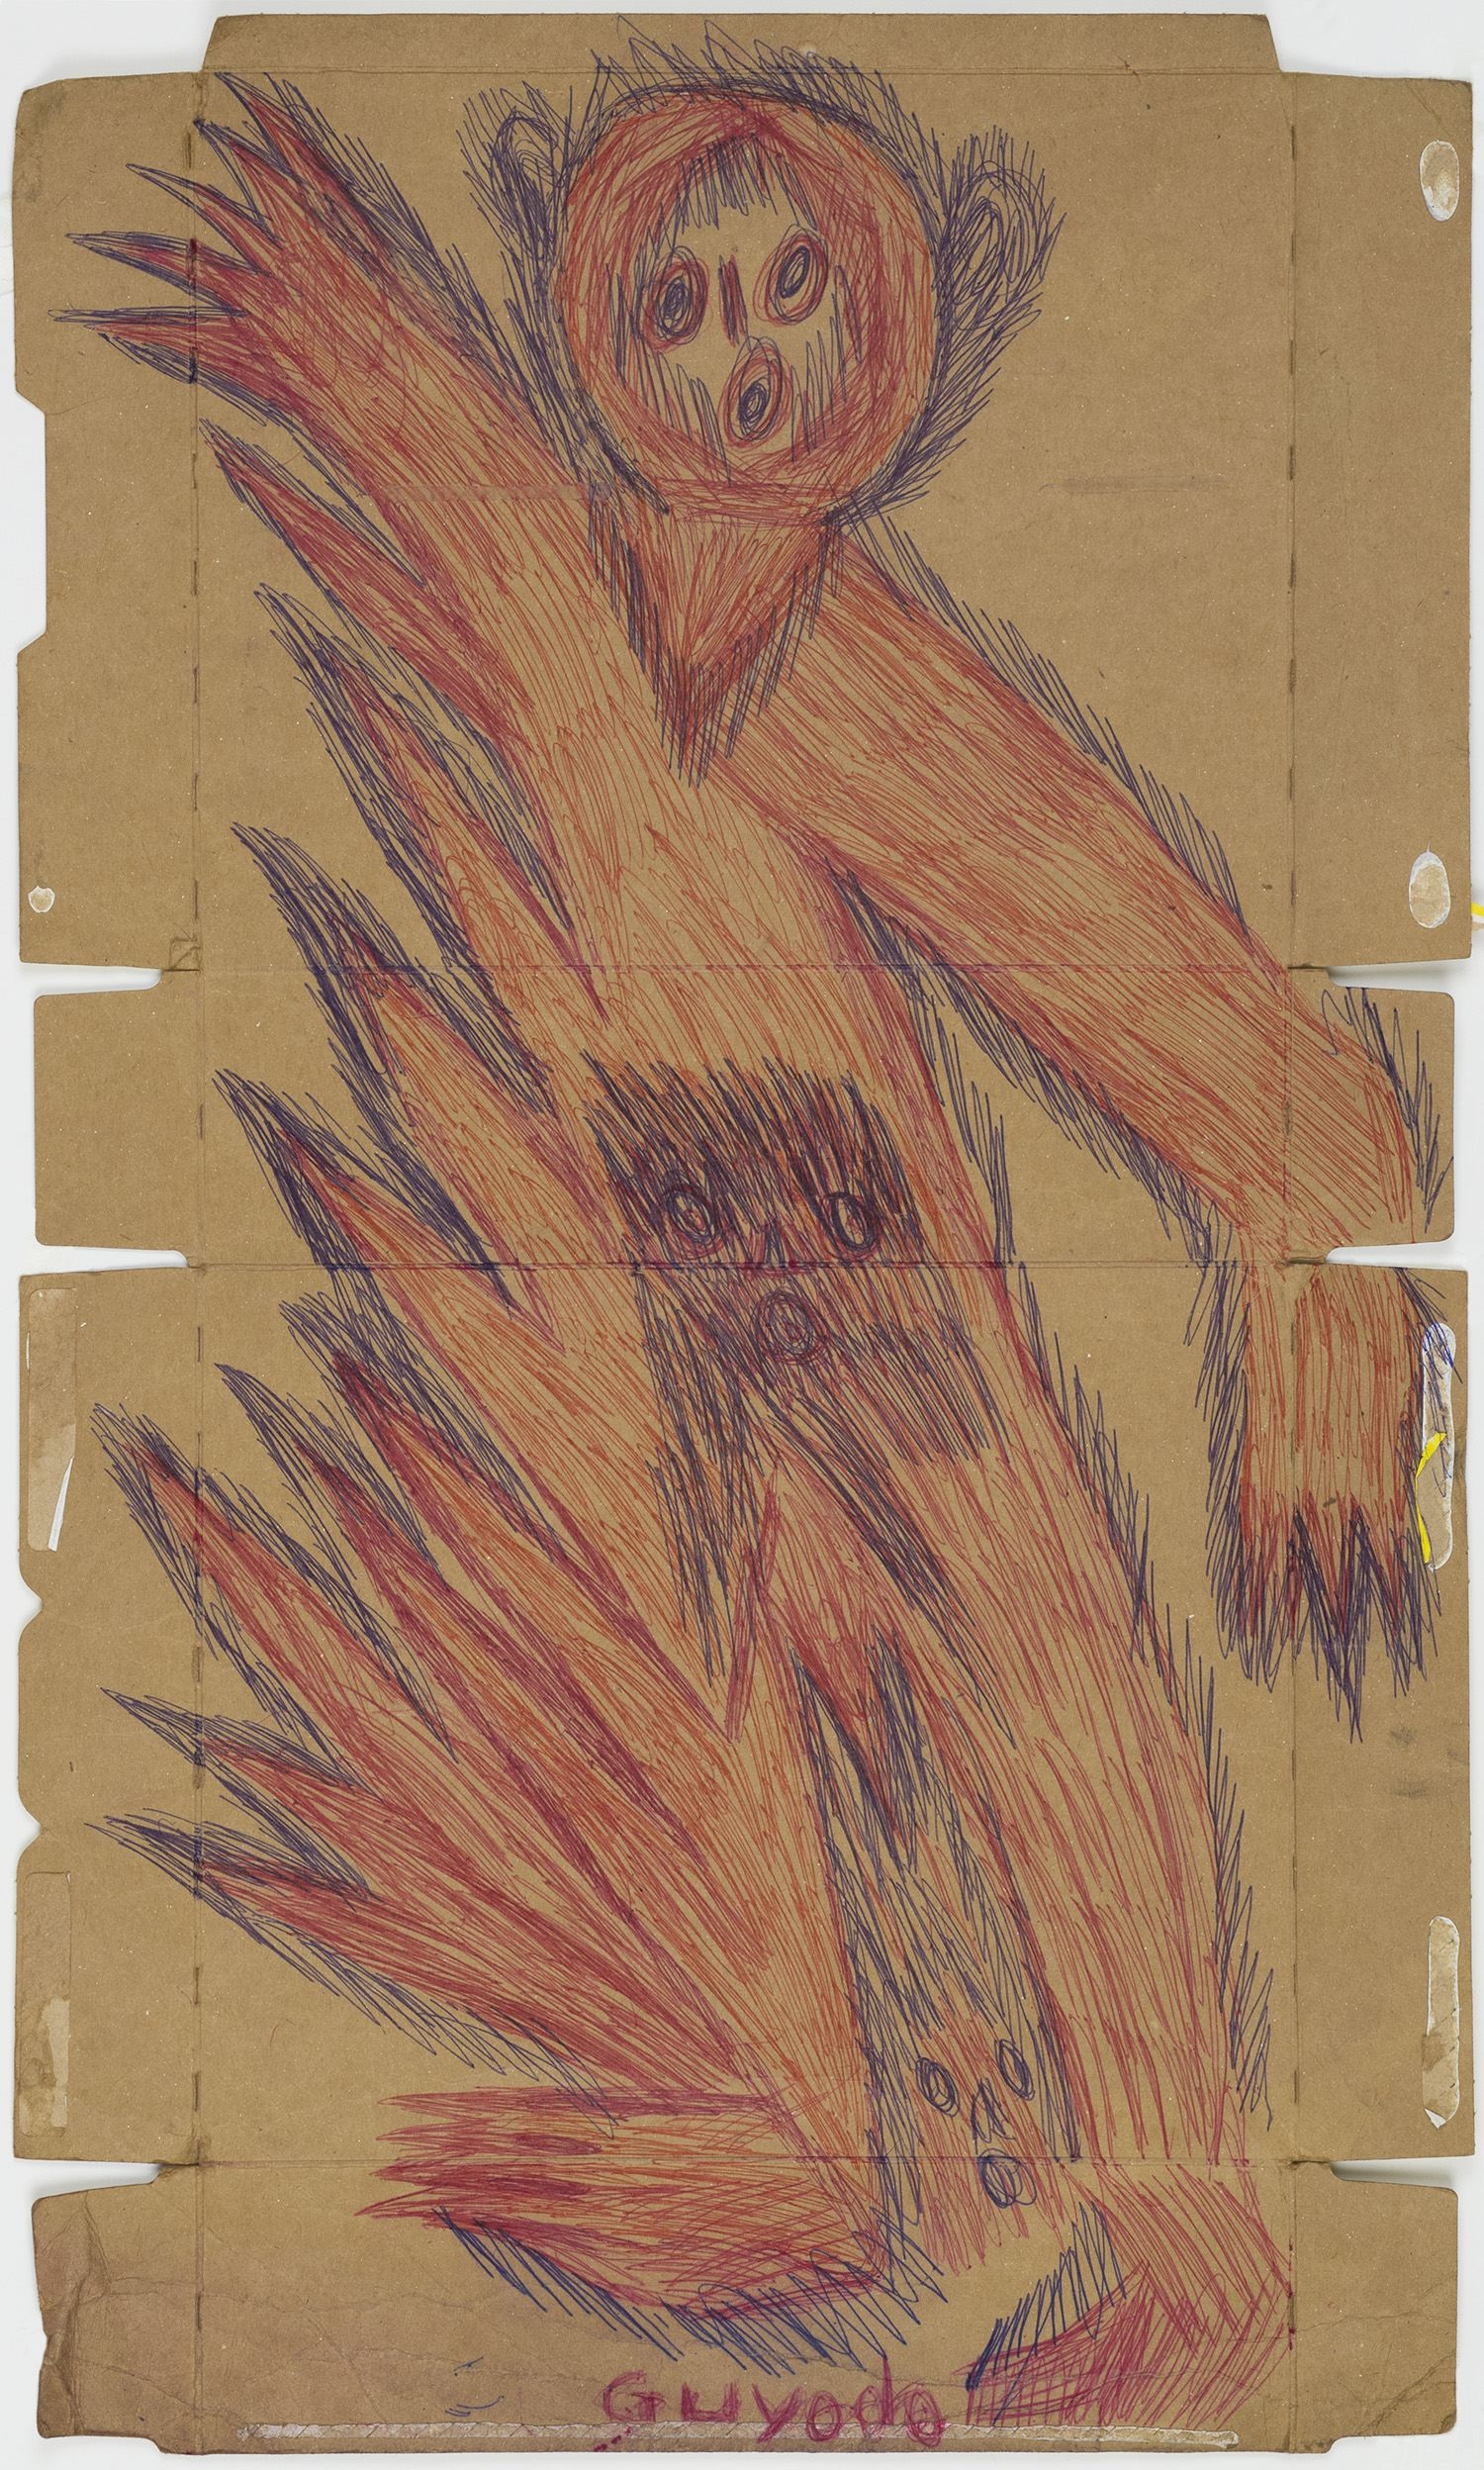 Guyodo (Frantz Jacques)    Untitled  , 2014 Ballpoint pen on recycled corn-flakes box 25.79 x 15.24 inches 65.5 x 38.7 cm Gyd 6